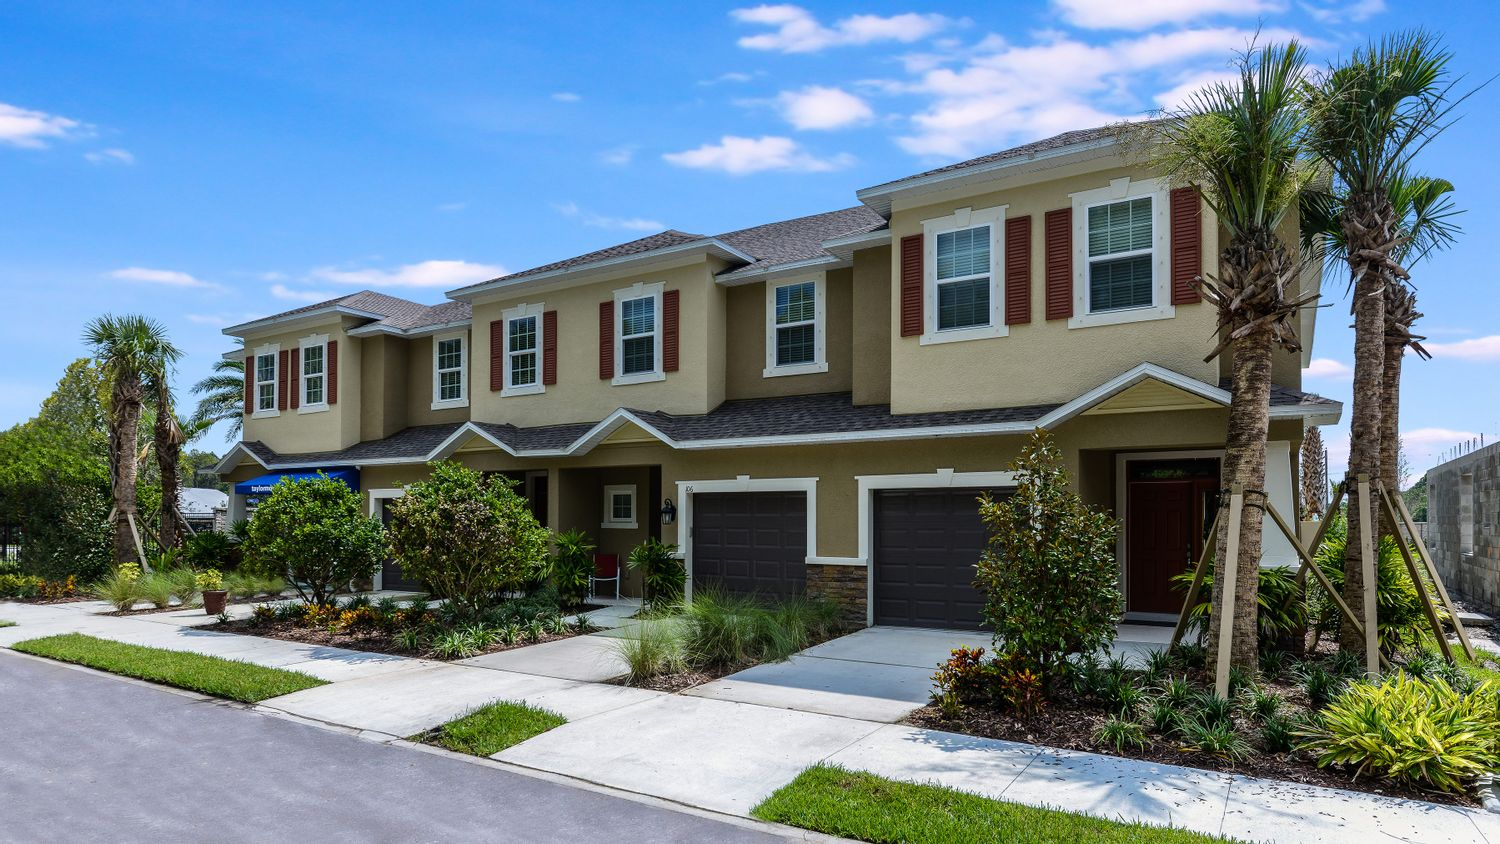 Multi Family for Sale at Tuscany Woods - Serona Iii By Appointment Only! Oldsmar, Florida 34677 United States